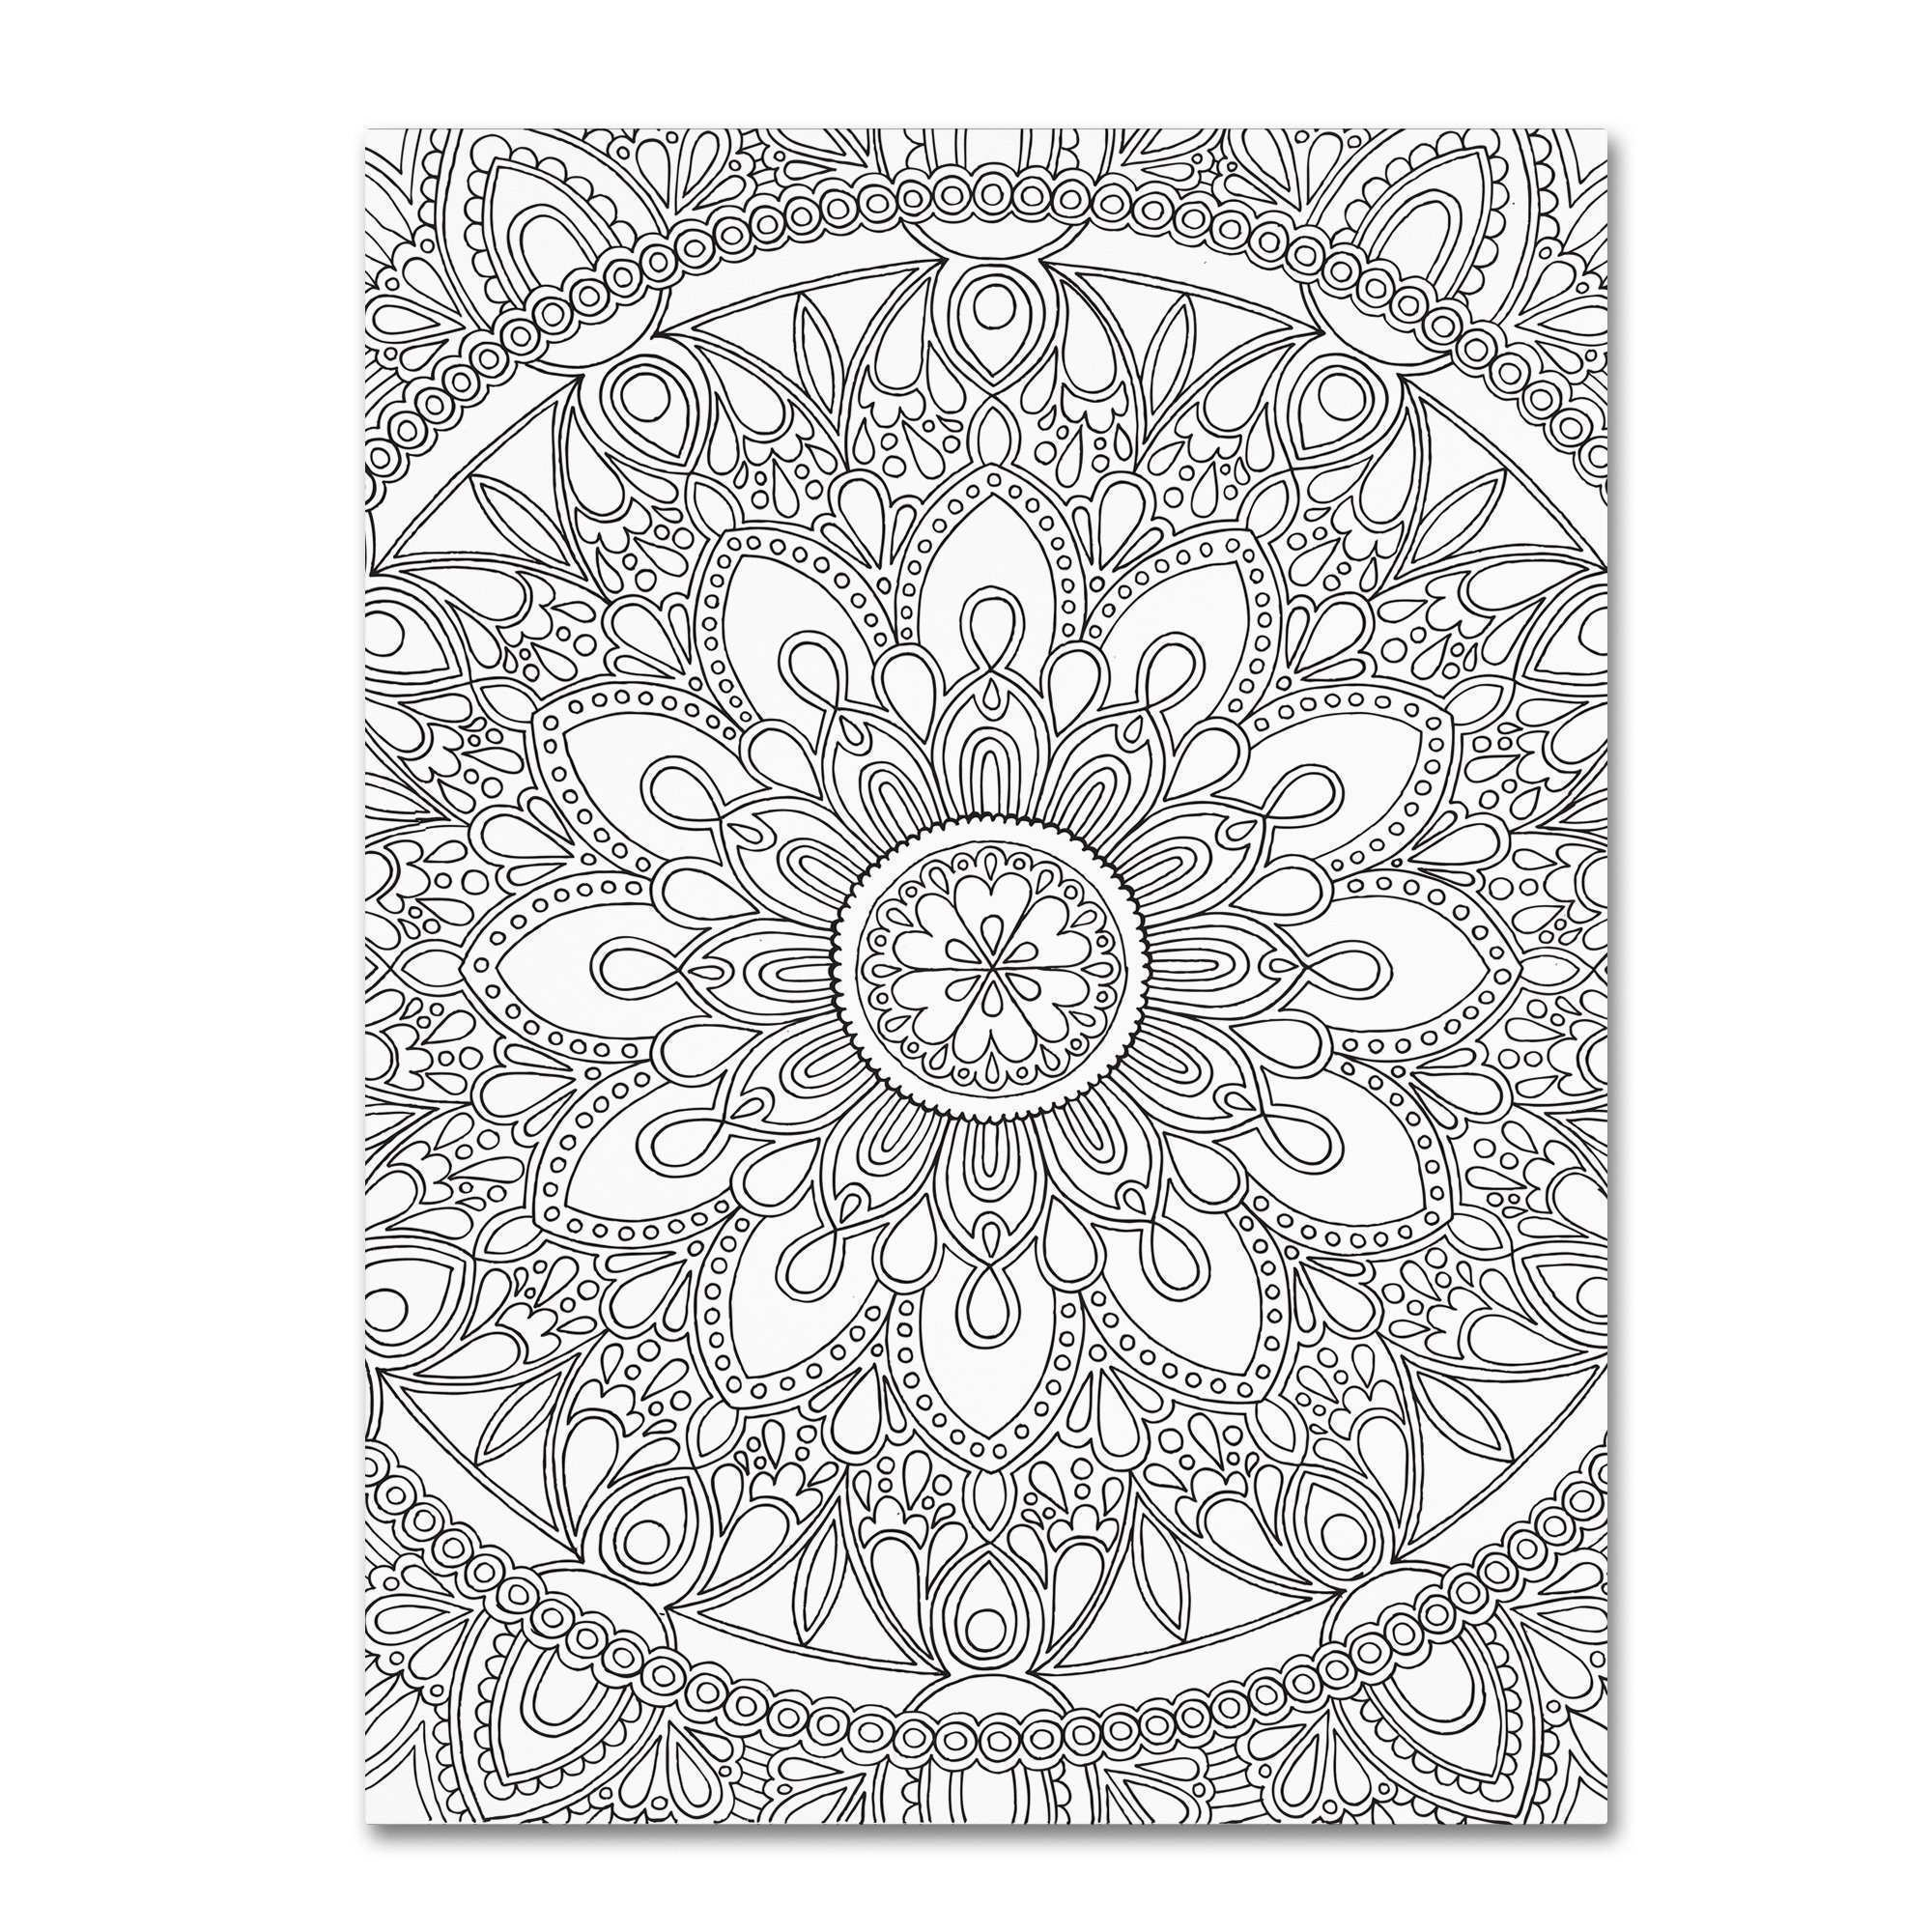 East Urban Home Delightful Mandala Graphic Art on Wrapped Canvas